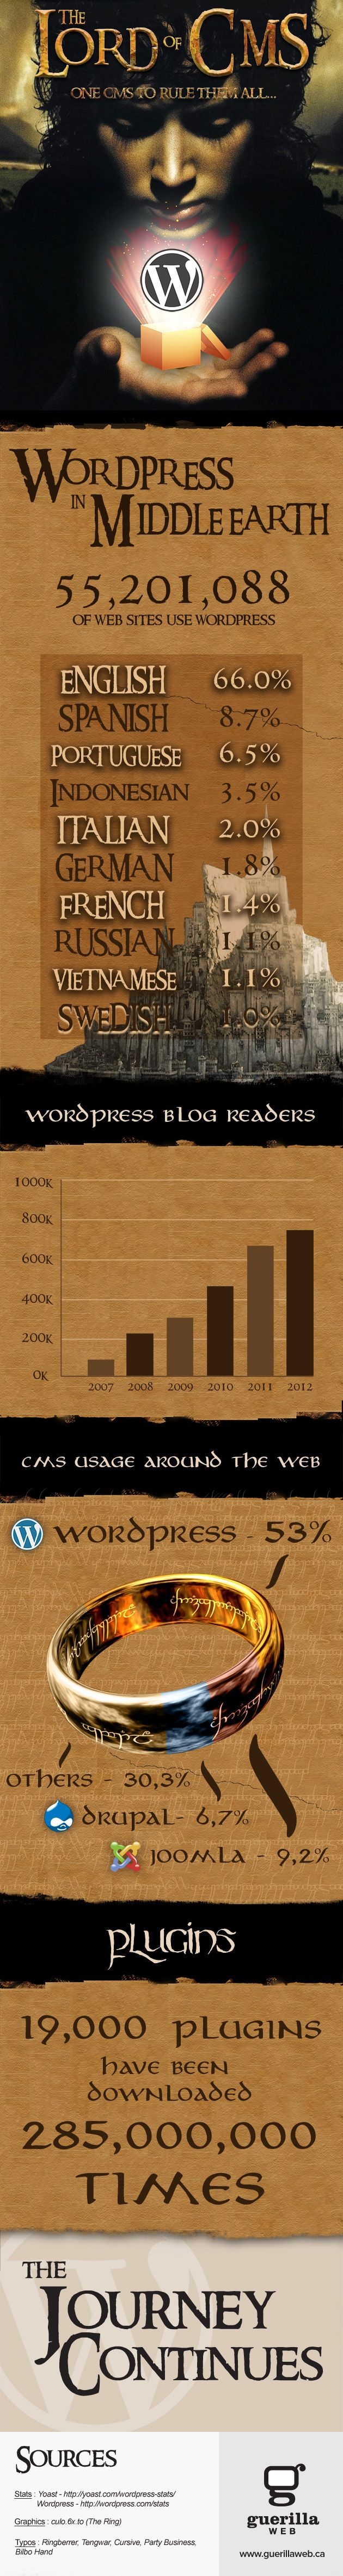 Wordpress [Infographic] - One CMS to rule them all!